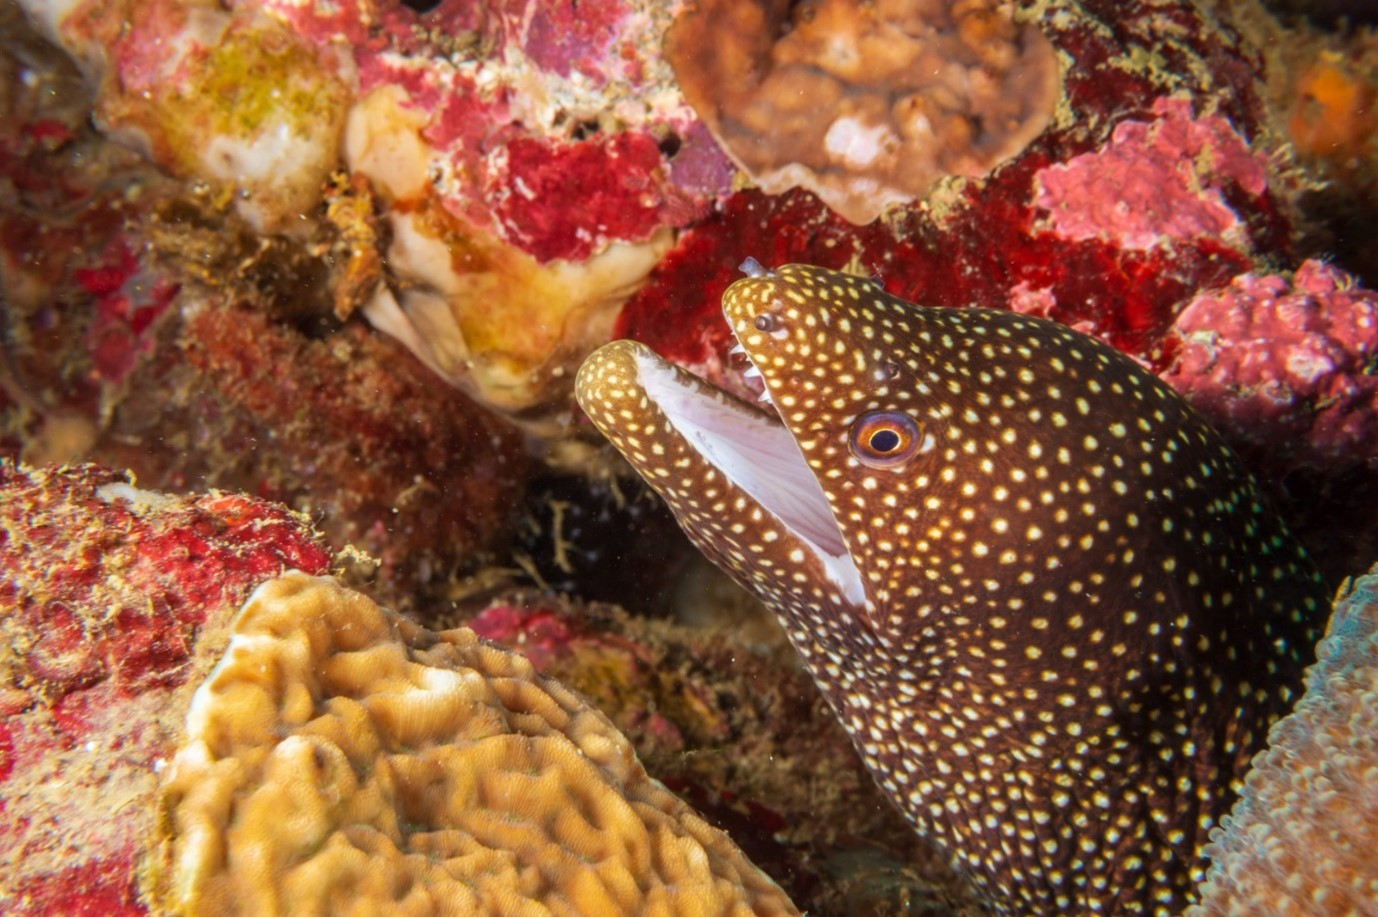 Yellow Spotted Moray Eel